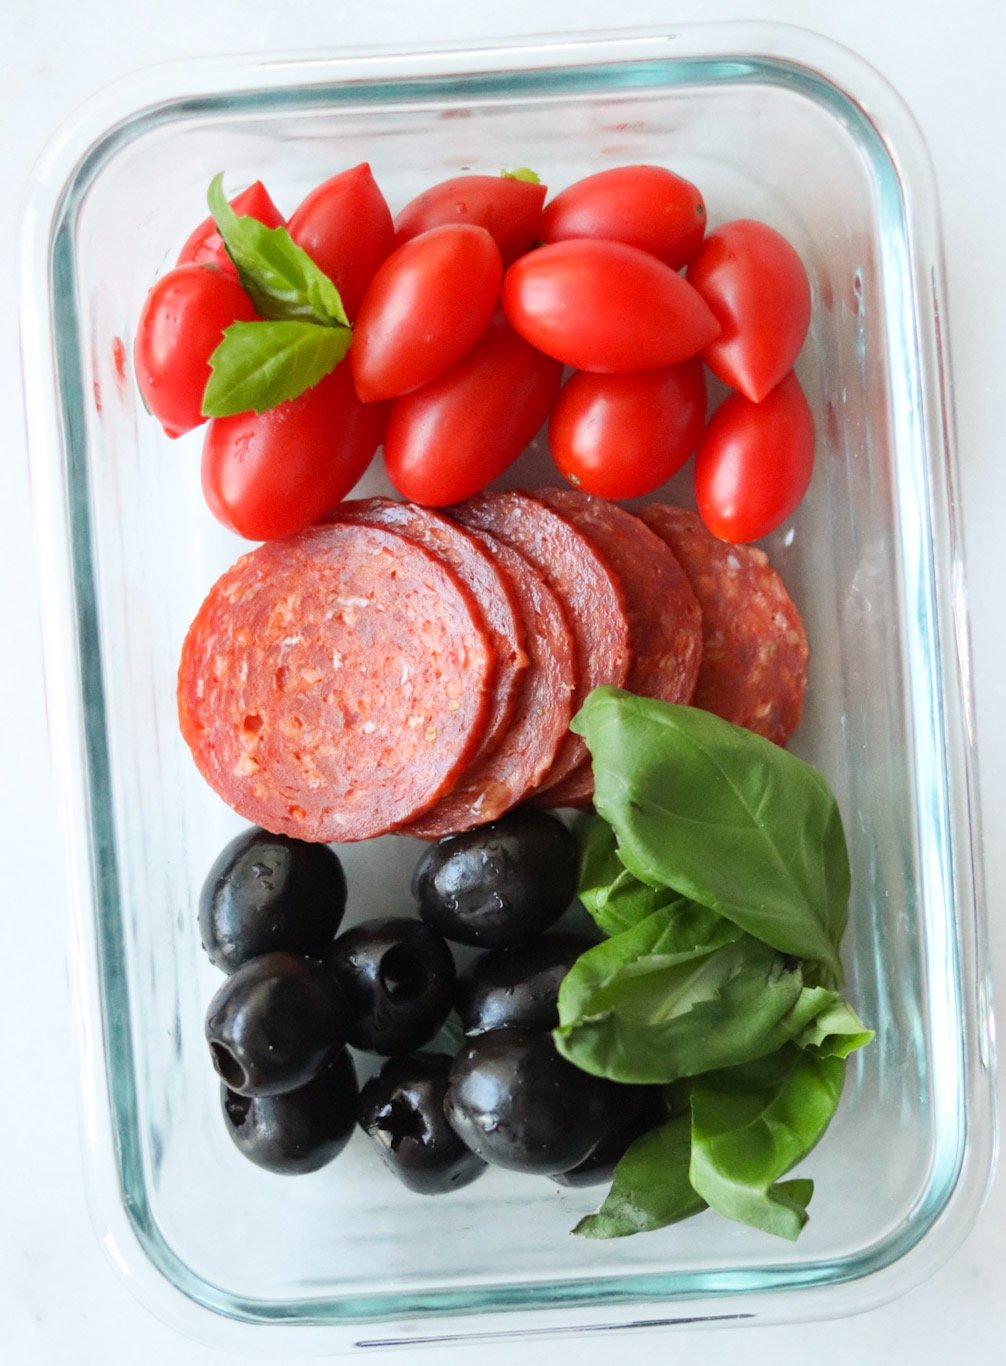 Whole30 mini meal in a glass container with pepperoni, olives, cherry tomatoes, and fresh basil.